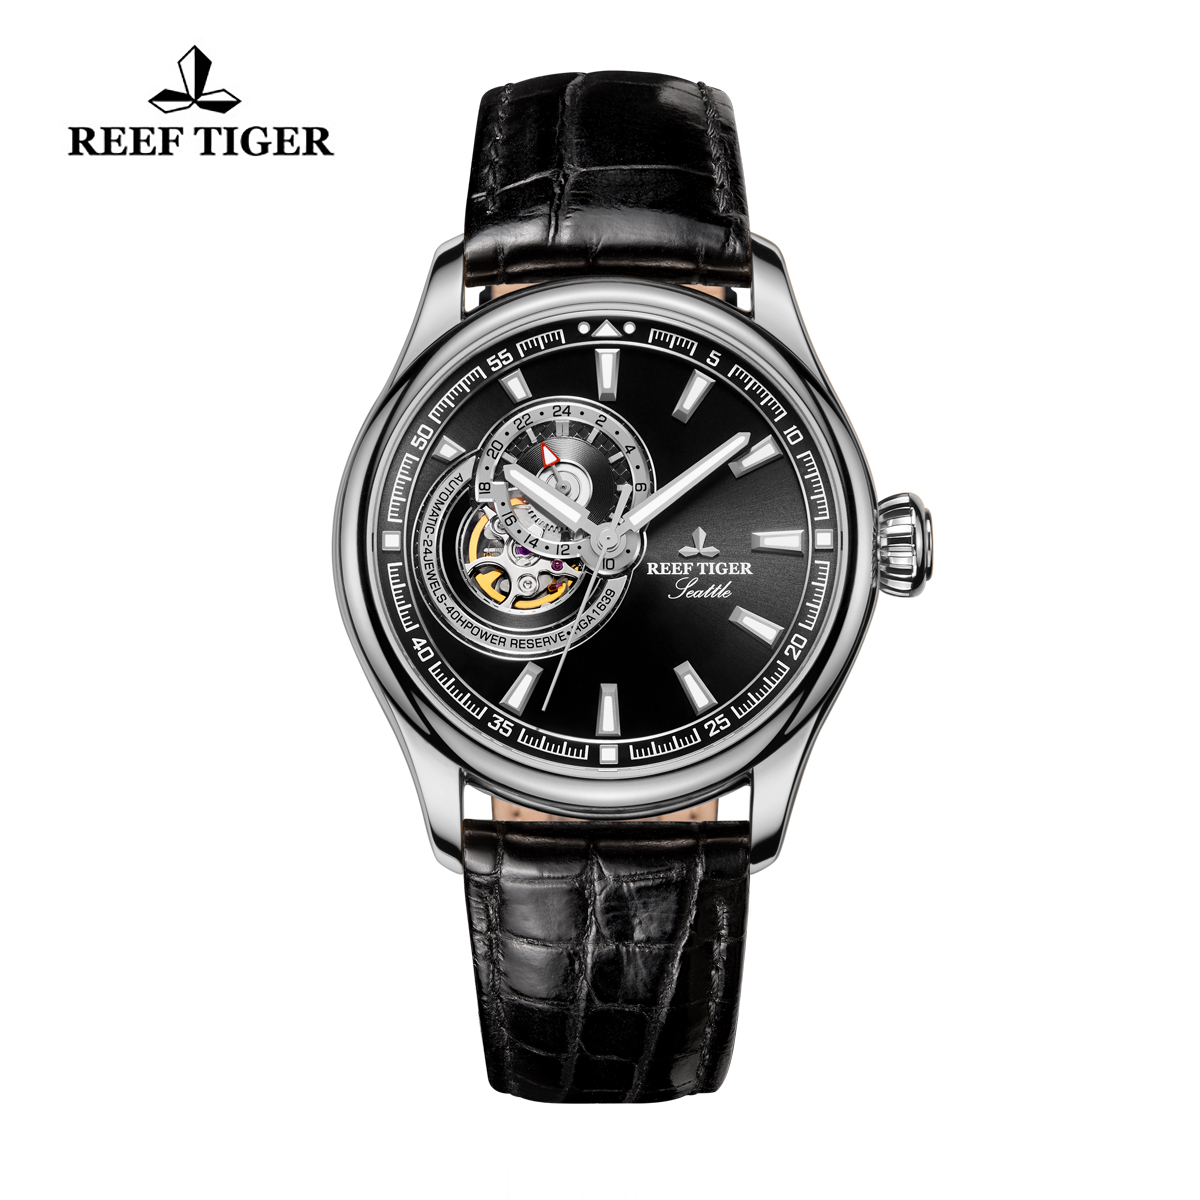 Reef Tiger Seattle Sea Hawk Dress Automatic Watch Steel Black Dial Black Leather Strap RGA1639-YBB